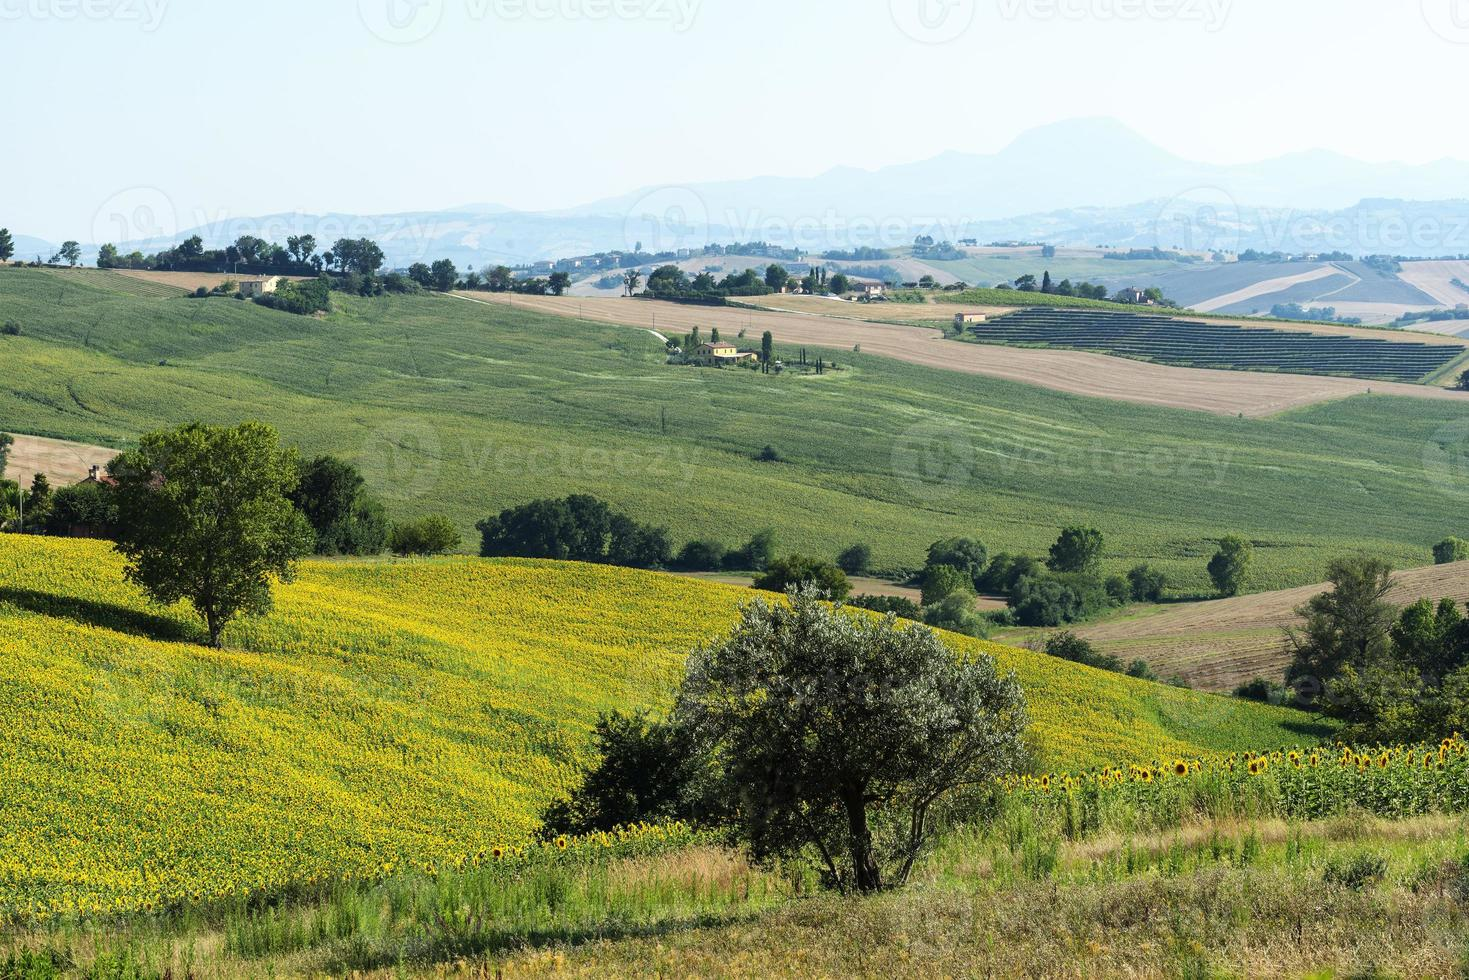 Marches (Italy): summer landscape photo